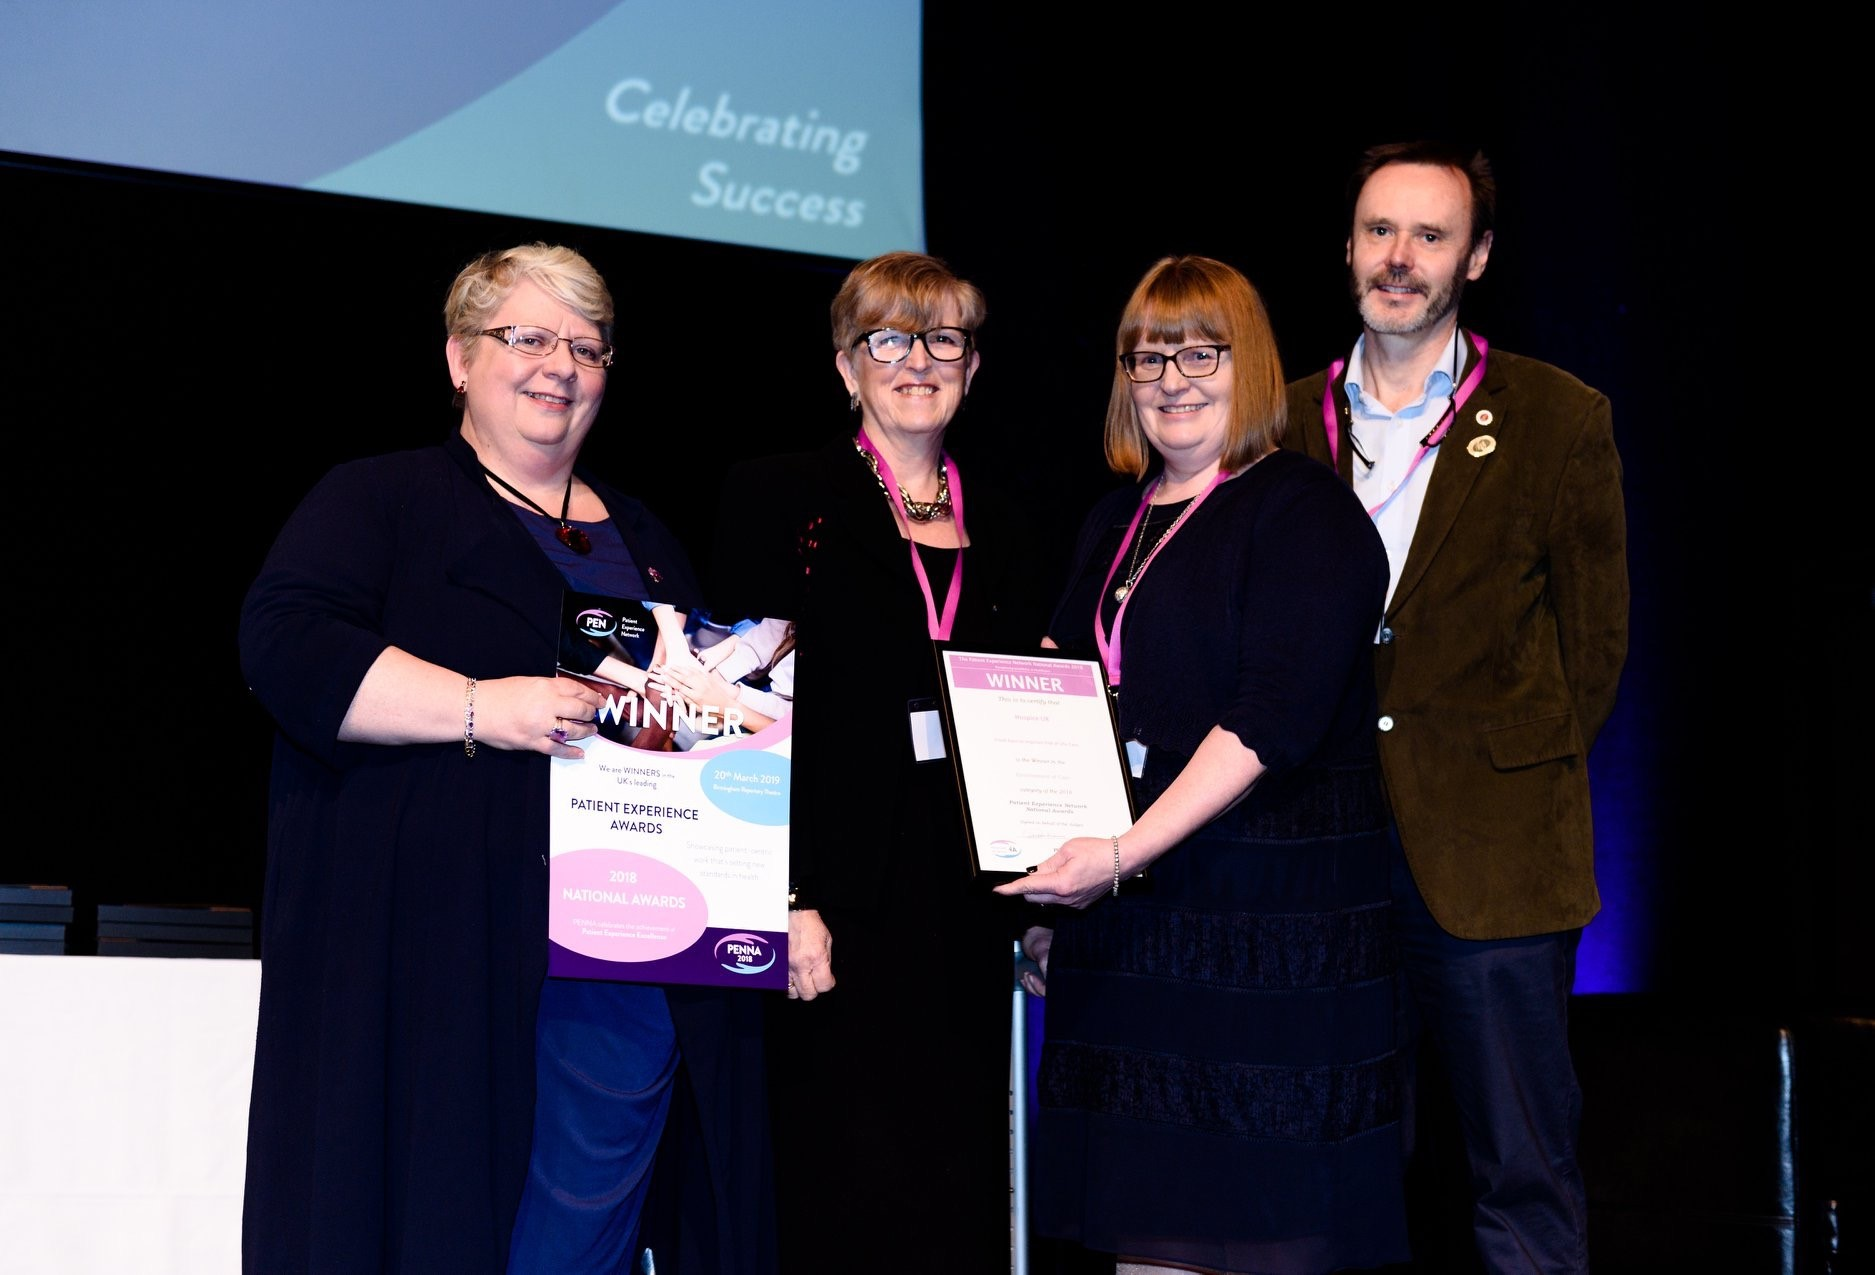 Hospice UK project to improve experience of carers wins national award